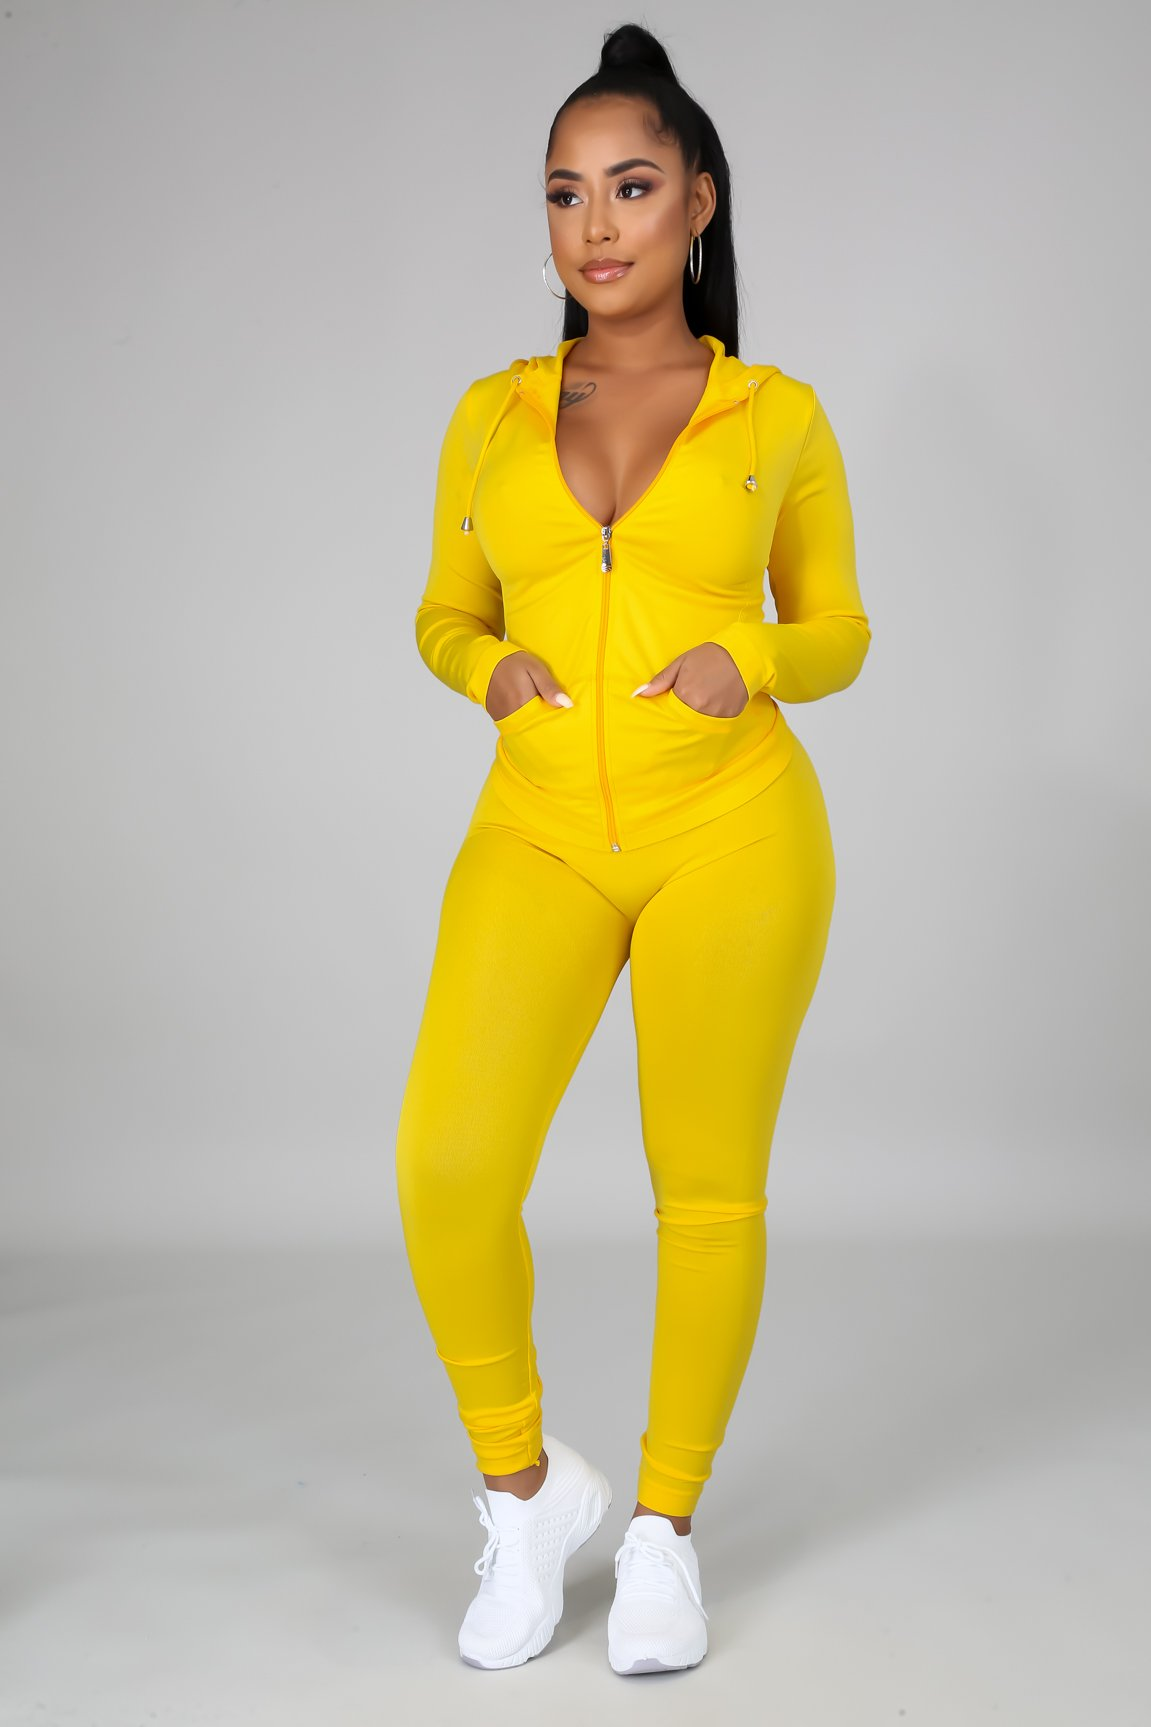 You Can Do It Legging Set - Yellow